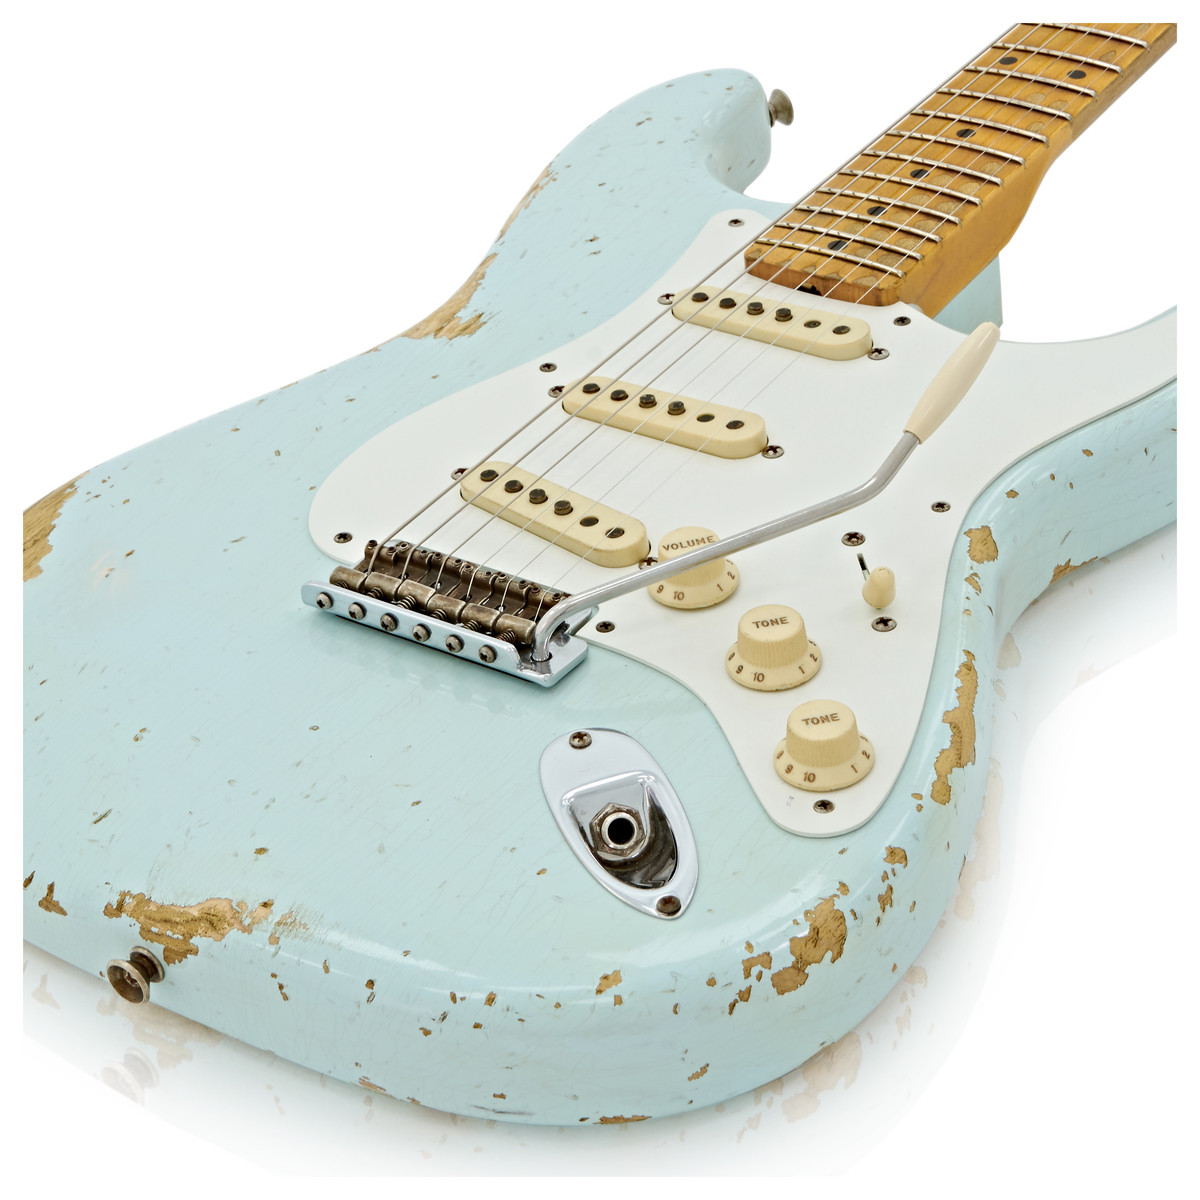 DISC Fender Custom Shop Limited 1956 Relic Strat, Faded Sonic Blue ...